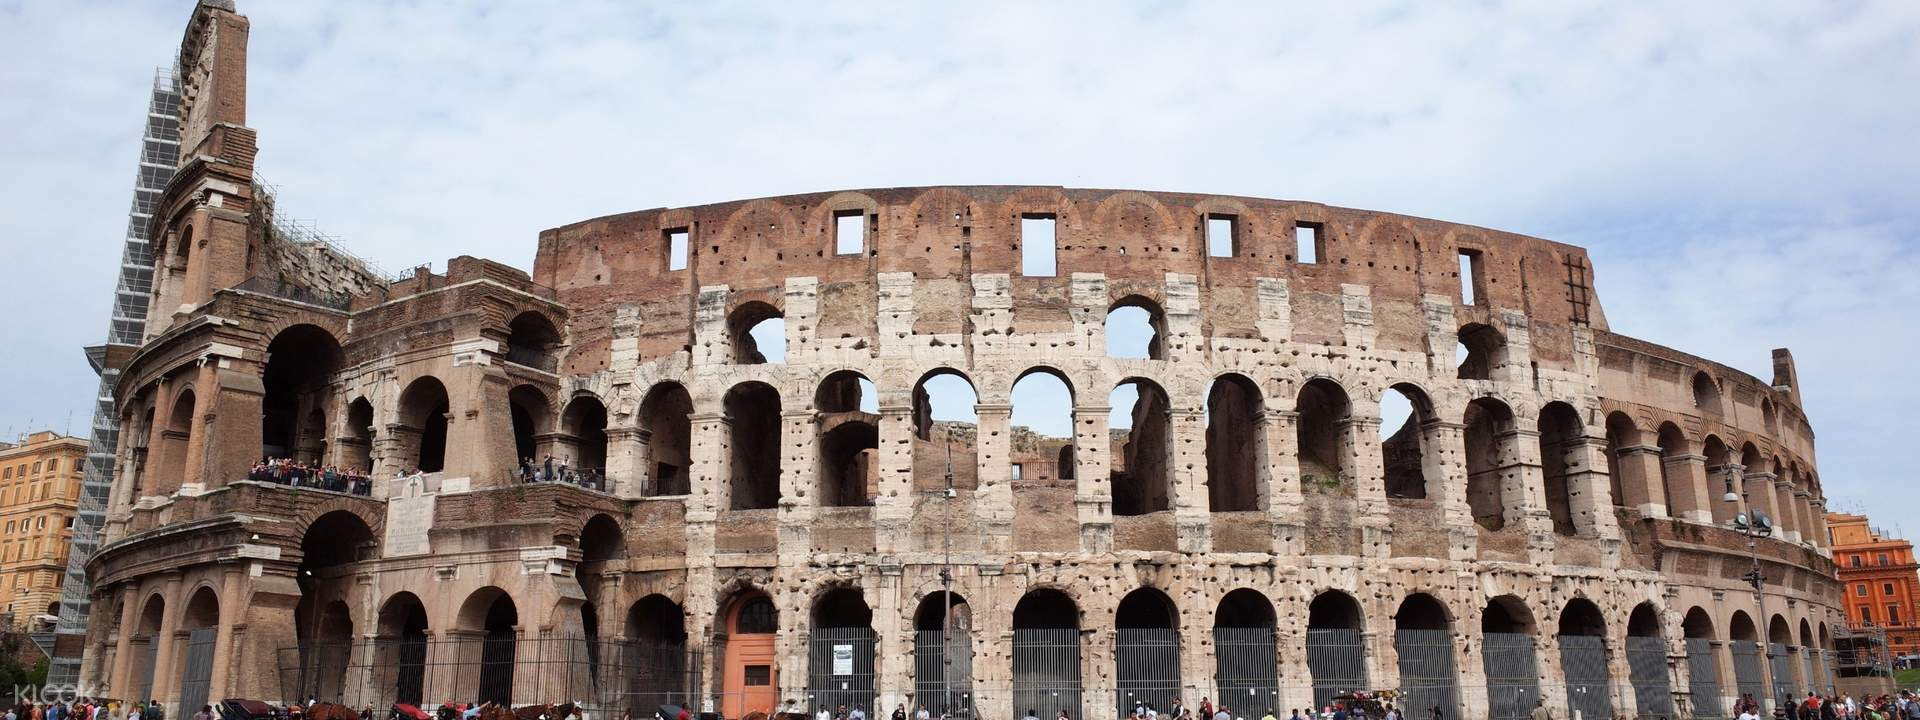 Colosseum Skip-the-Line Entrance Ticket in Rome, Italy - Klook